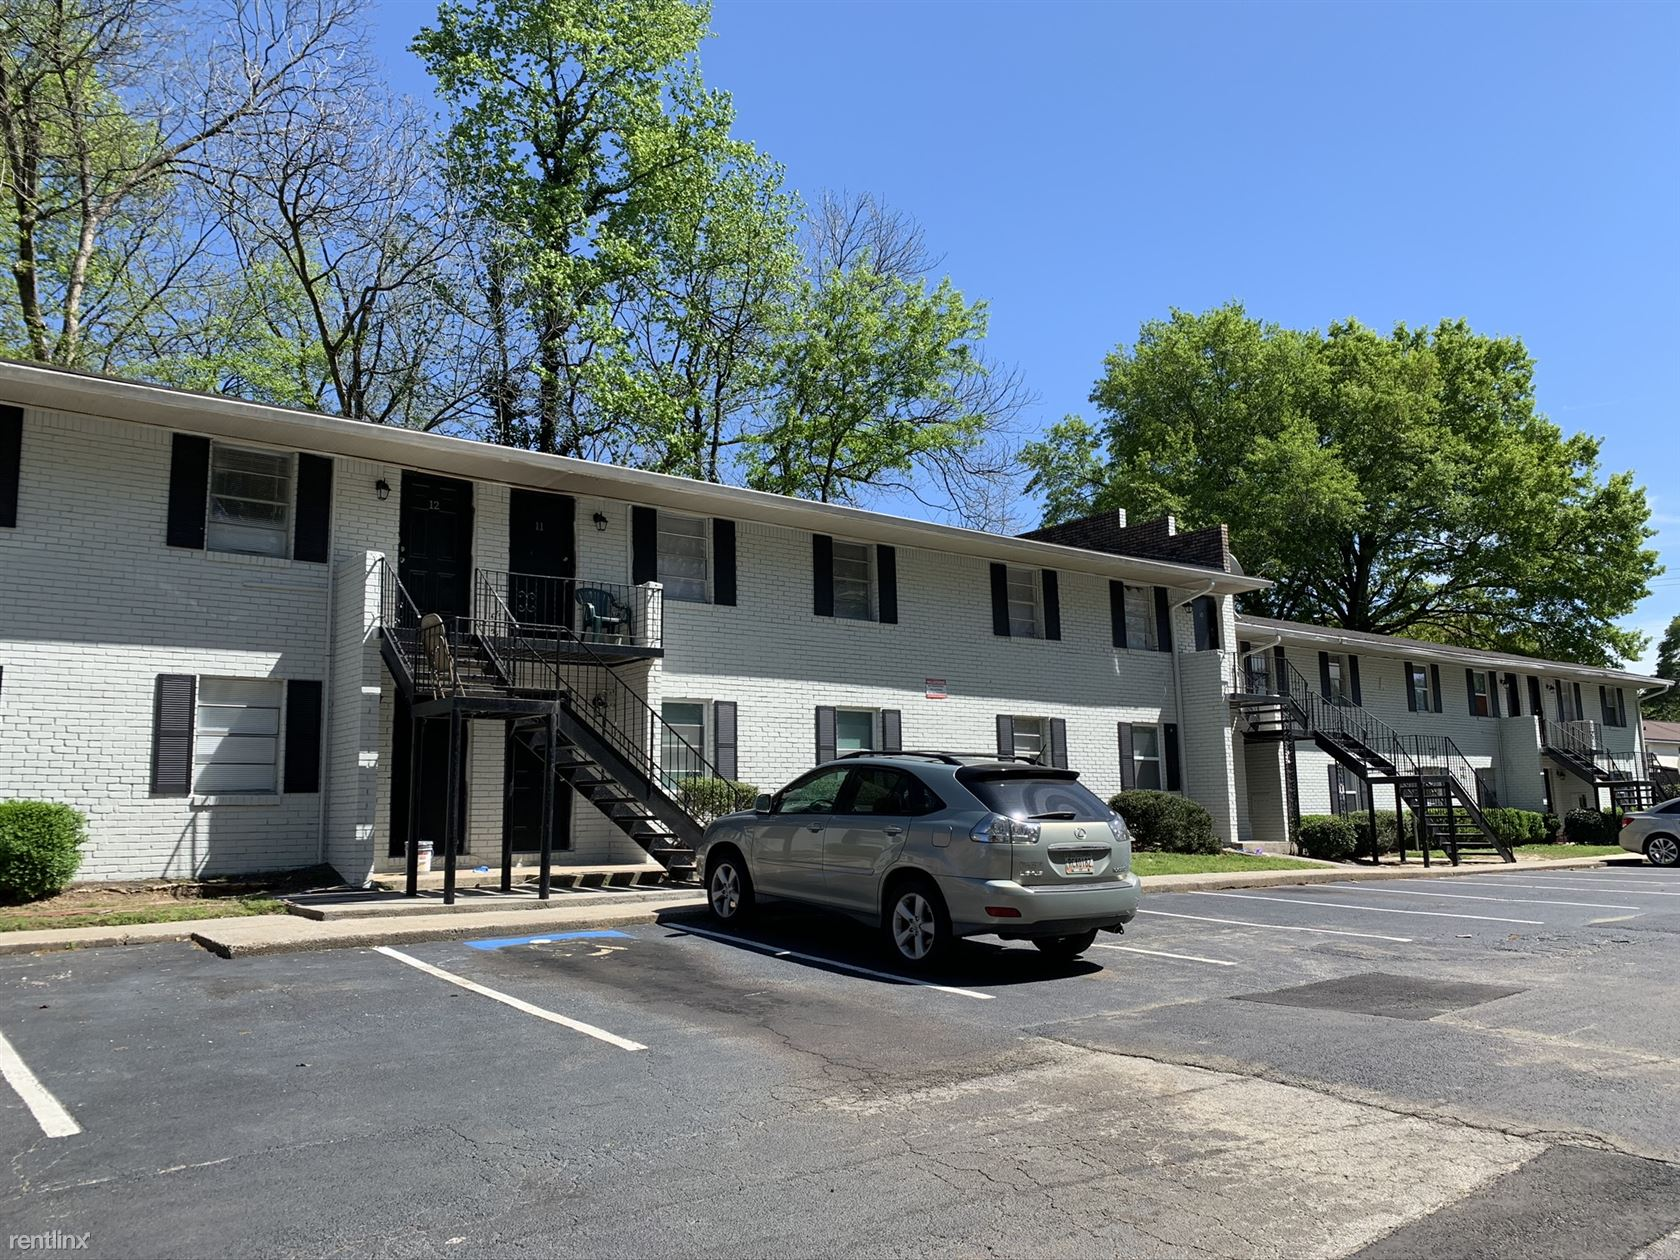 976 Forest Ave, Forest Park, GA - $900